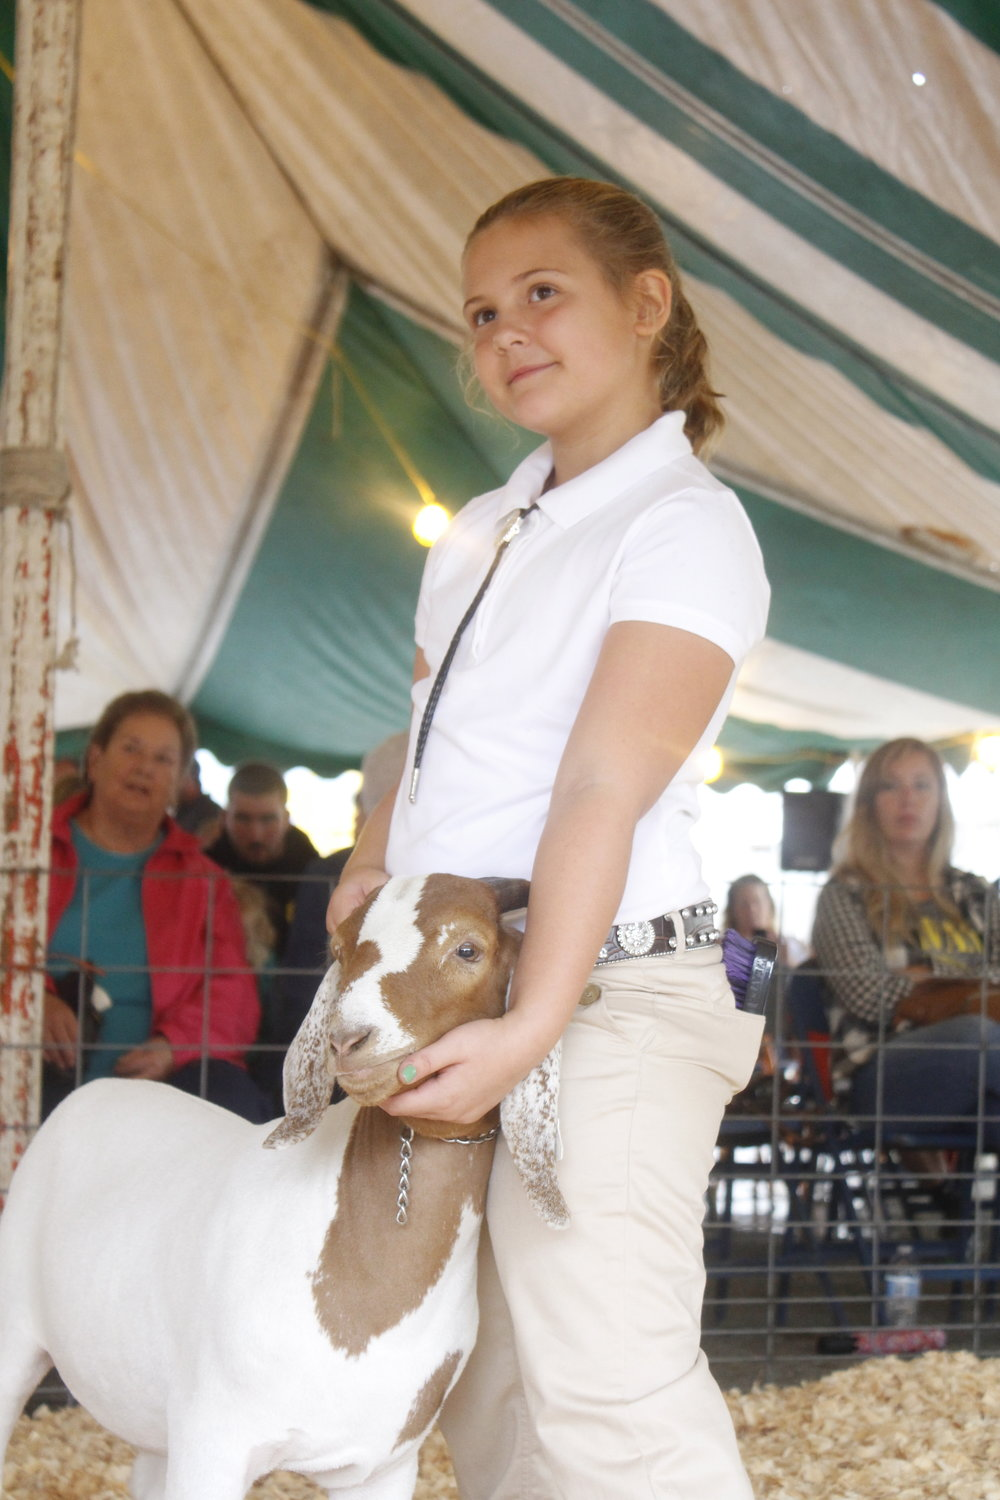 Madison Ohler always has a smile on her face while showing her livestock.